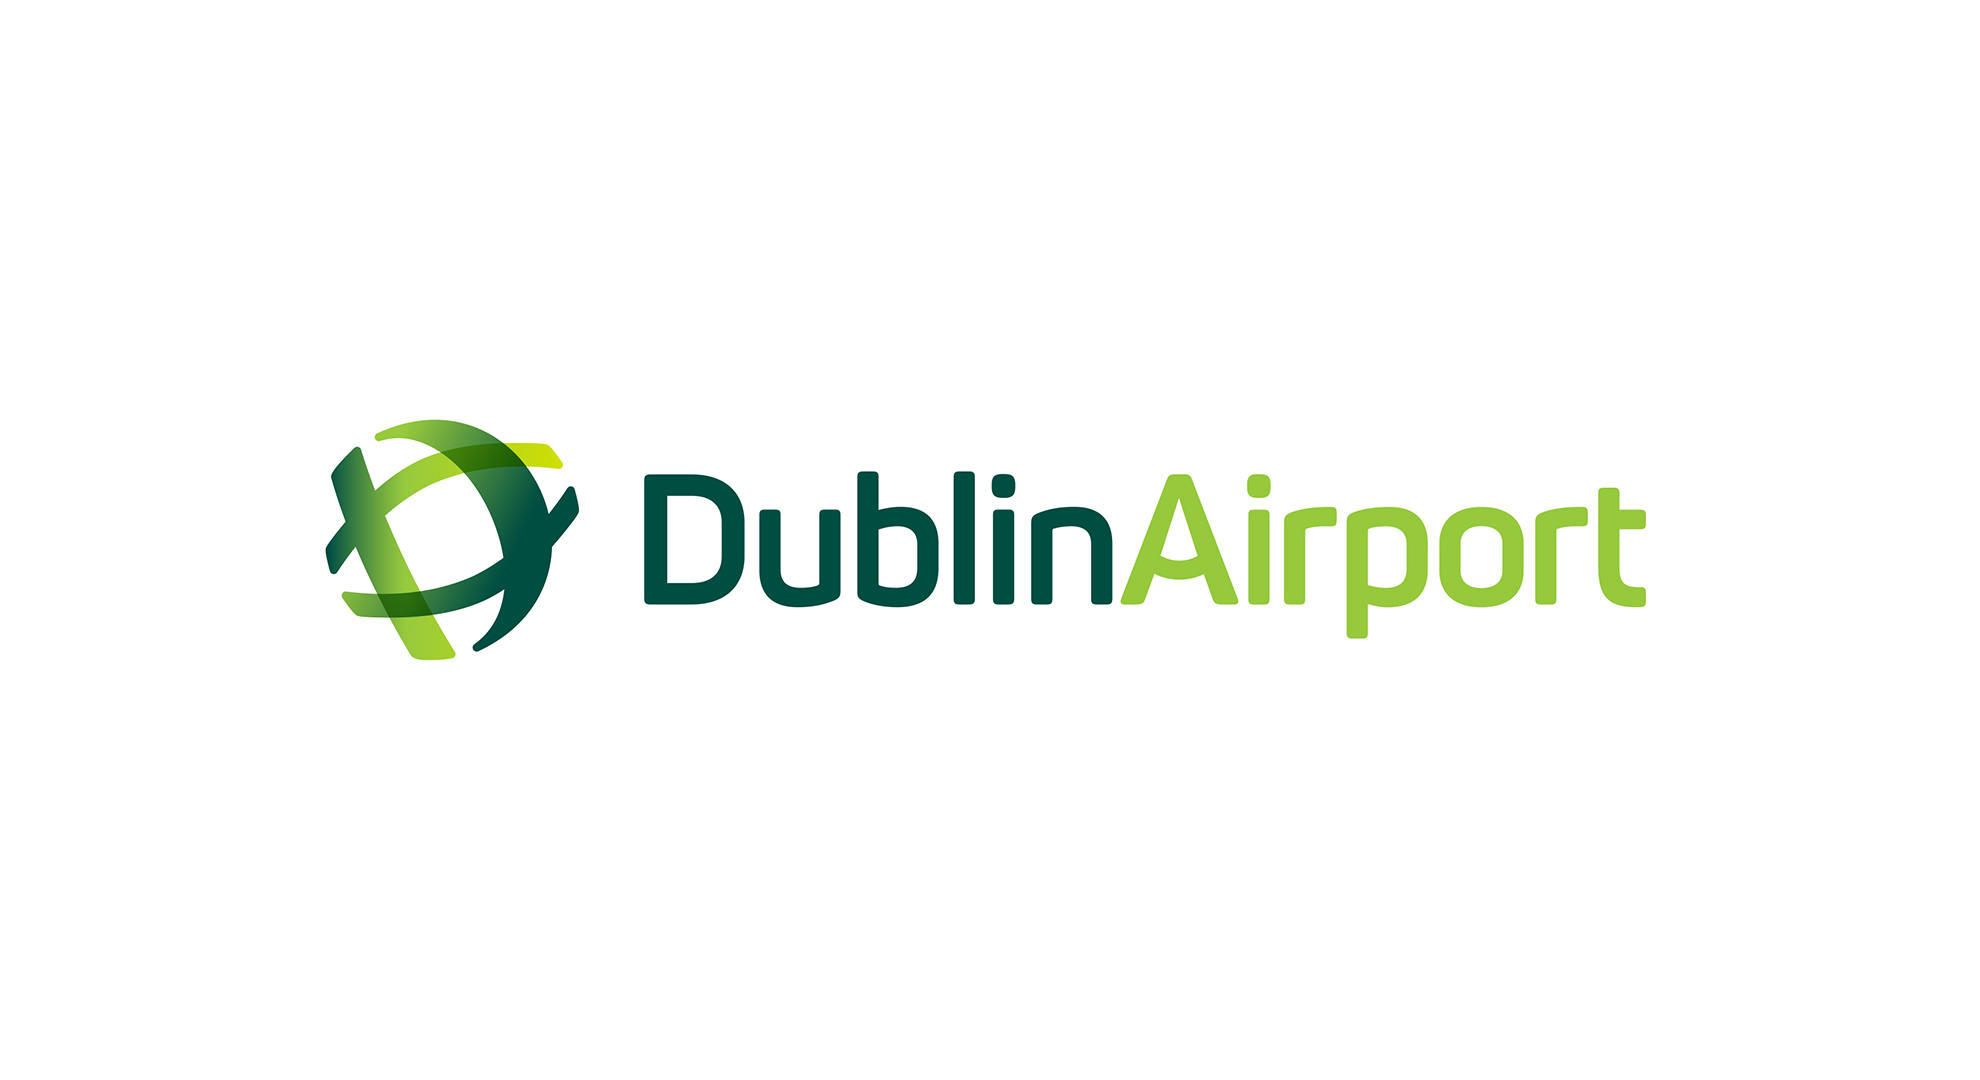 Cover image: Dublin Airport